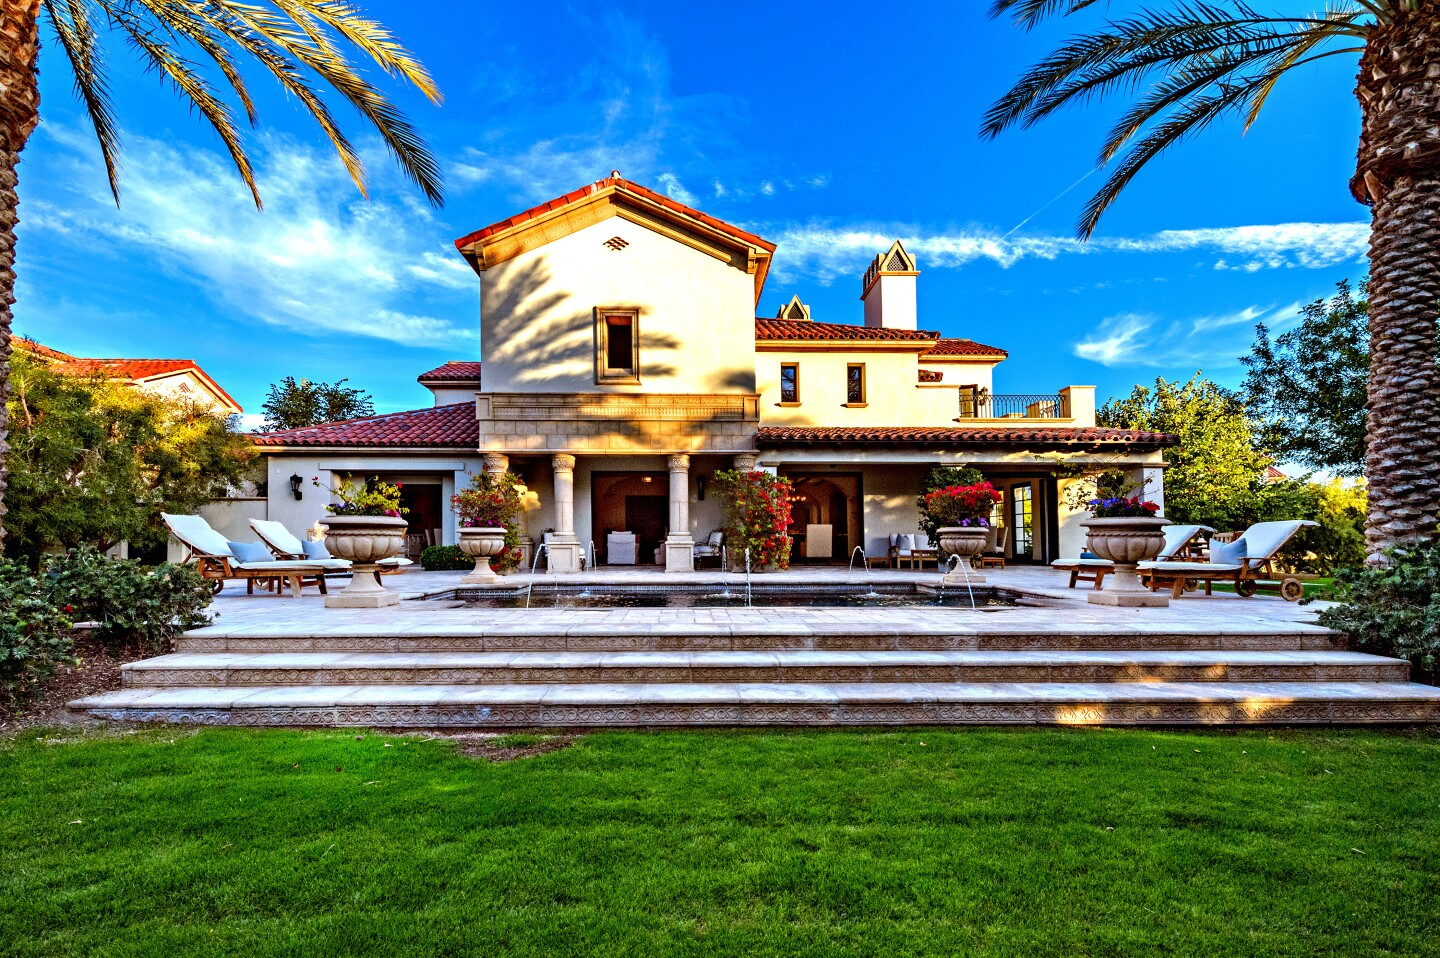 Sylvester Stallone is giving a home sale another go in La Quinta, where his retreat is on the market for $3.35 million. Stallone has been attempting to selling the 5,000-square-foot villa at the Madison Club for about five years. He bought the place a decade ago for $4.5 million. Spanish in style, the two-story villa features a grand living room, multiple outdoor spaces and a swimming pool. An expansive terrace overlooks the backyard.